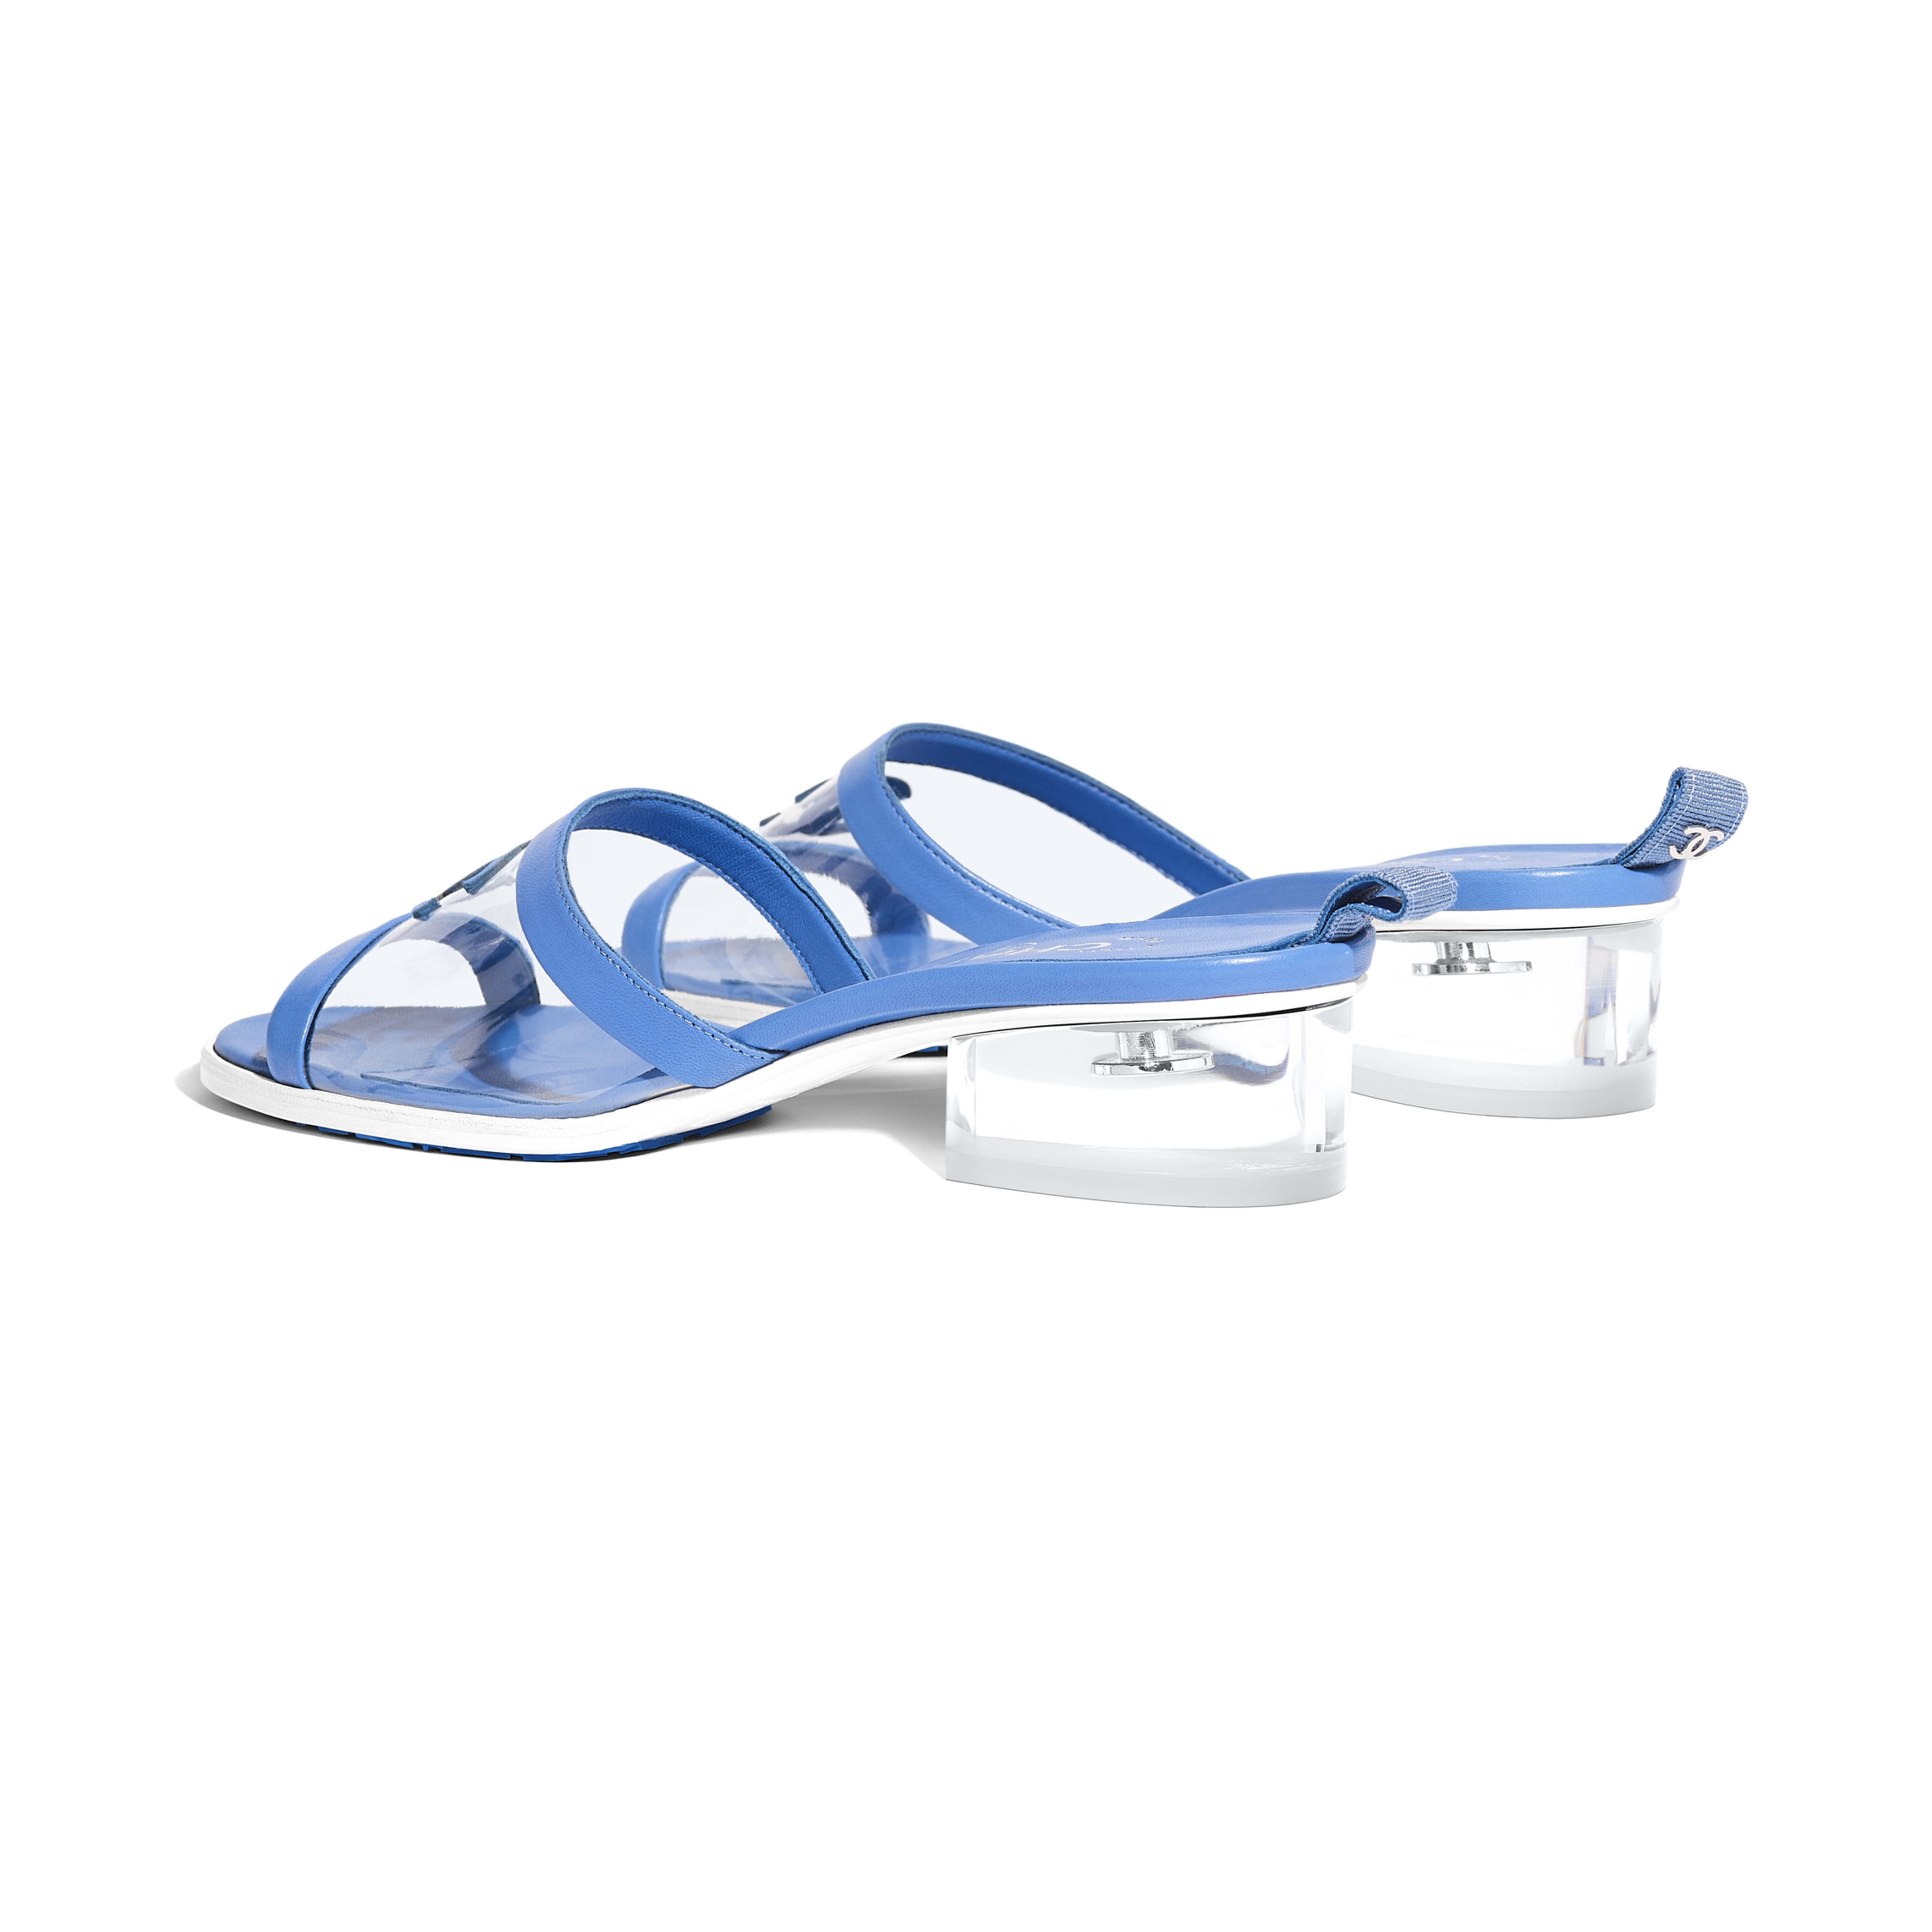 Mules - Transparent & Blue - PVC & Lambskin - Other view - see full sized version